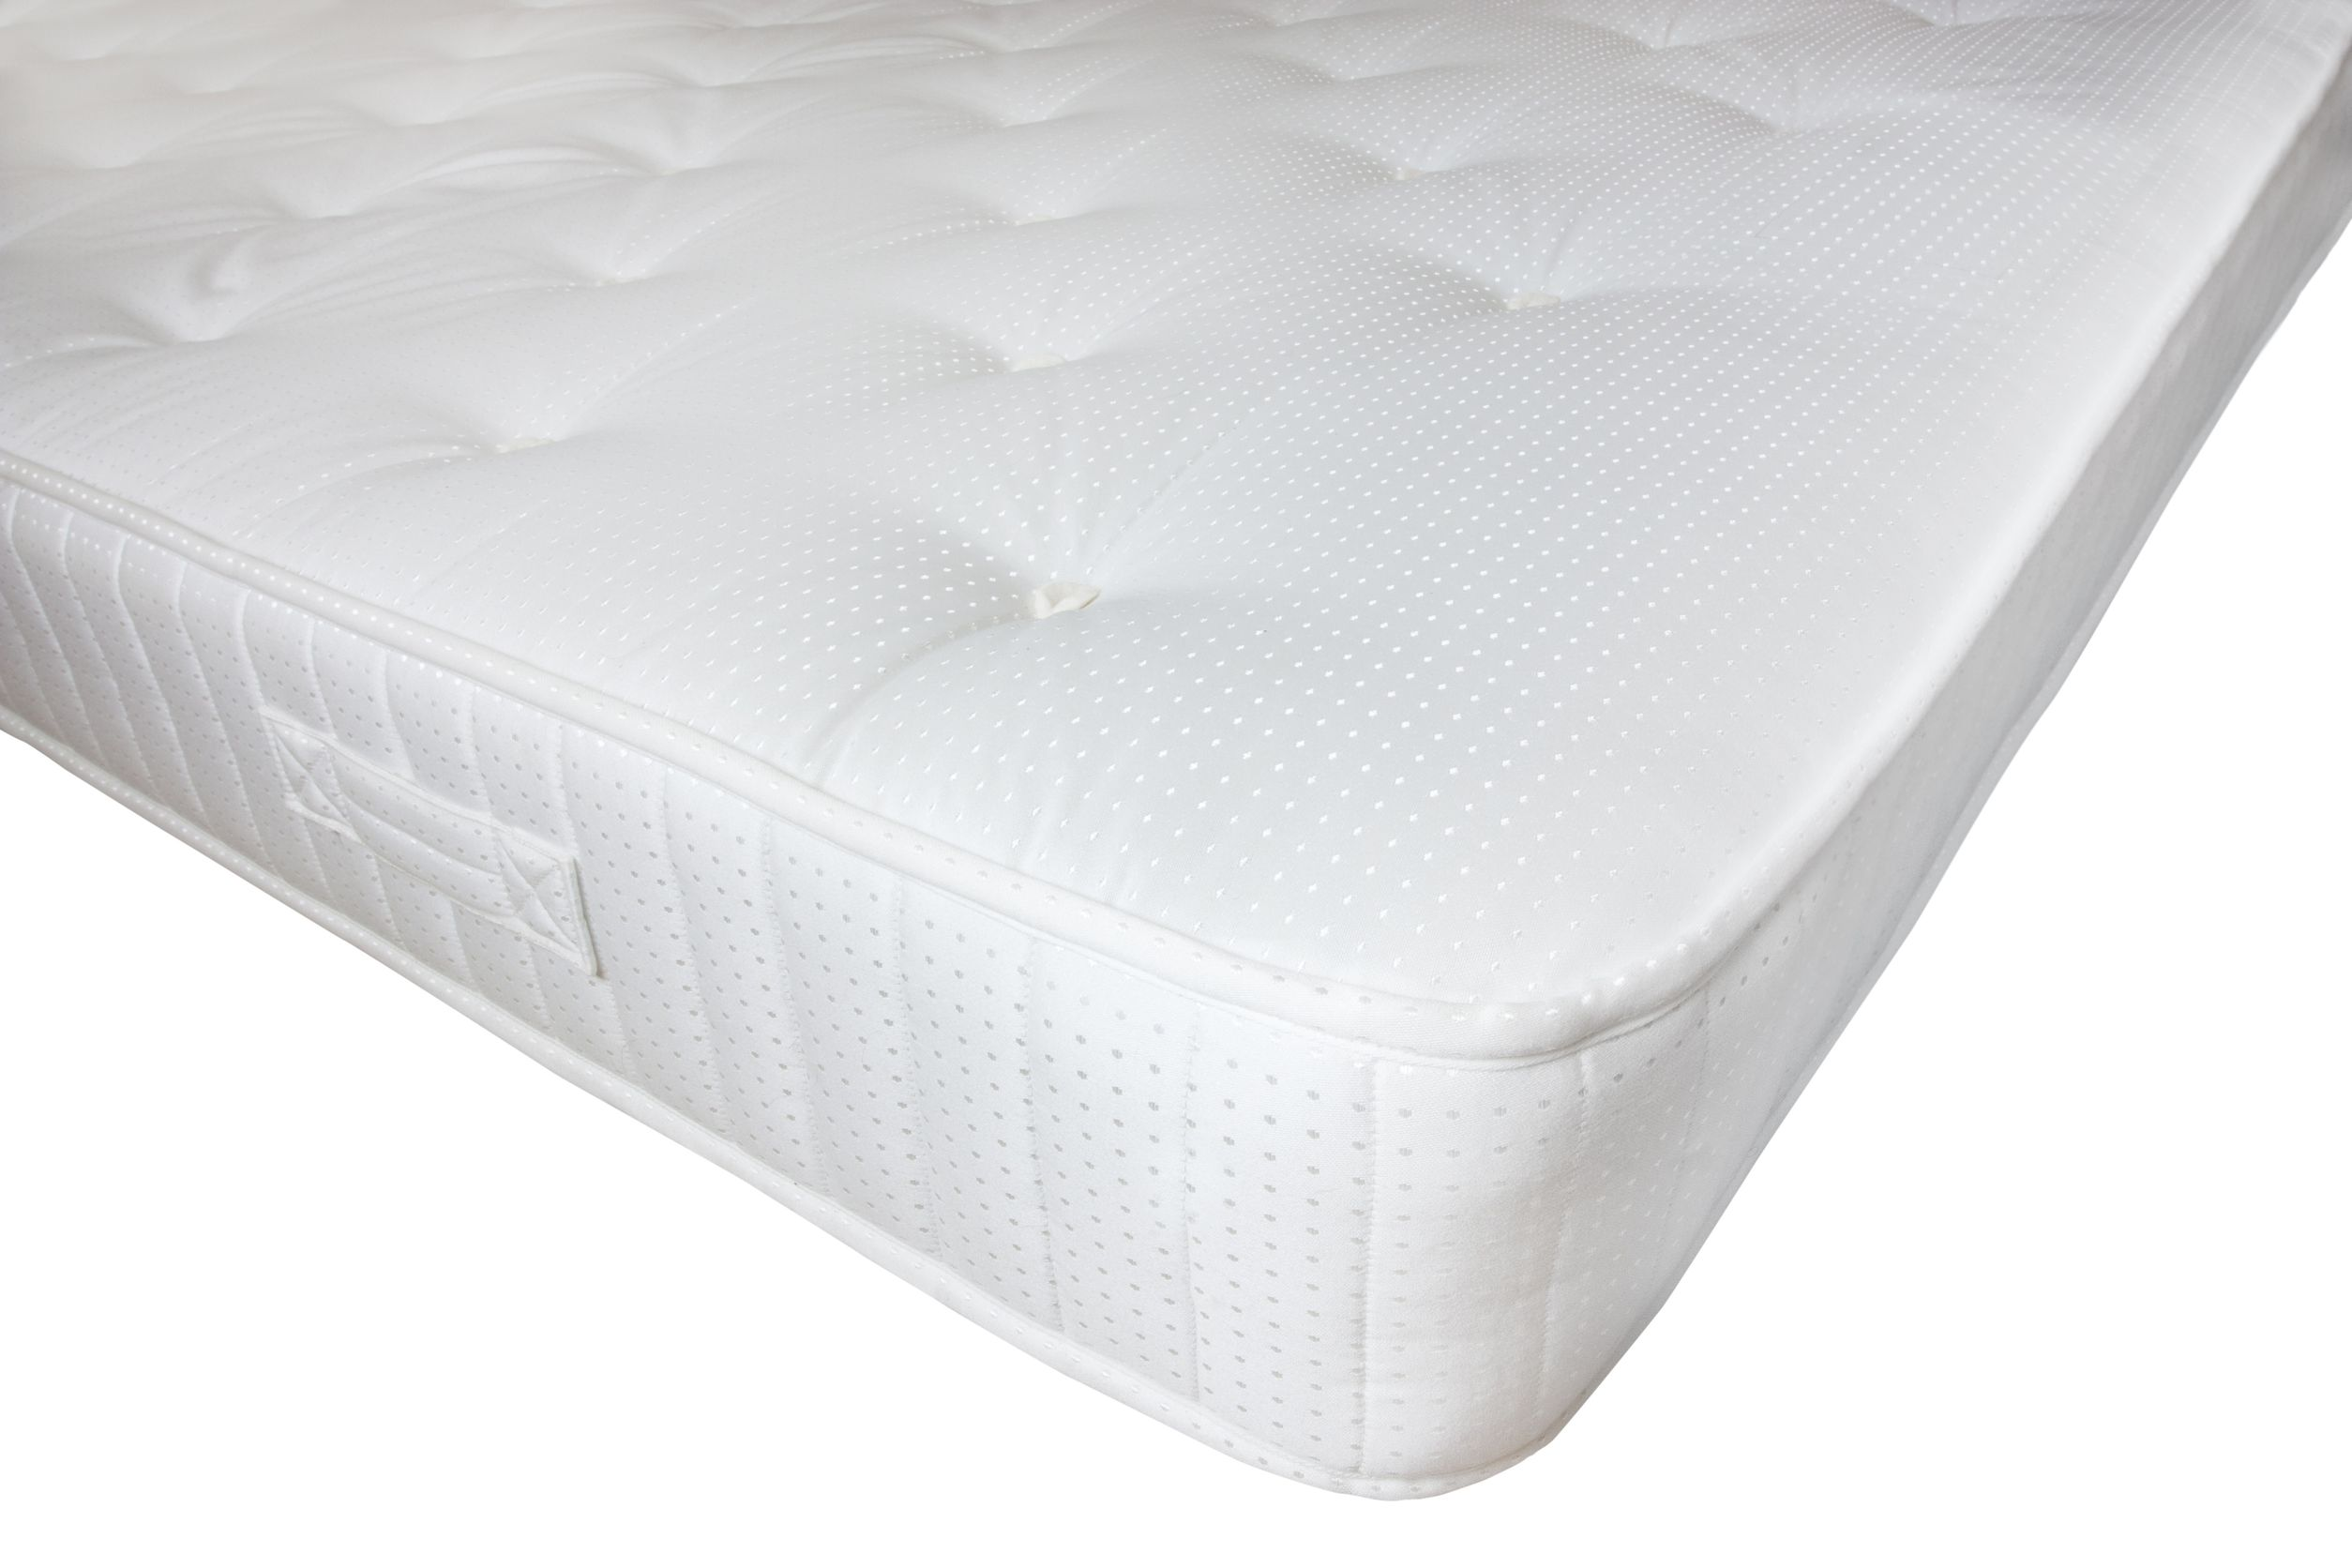 of new gallery drawers biweeklyz waterbed pad lovely with bed ideas mattress queen platform